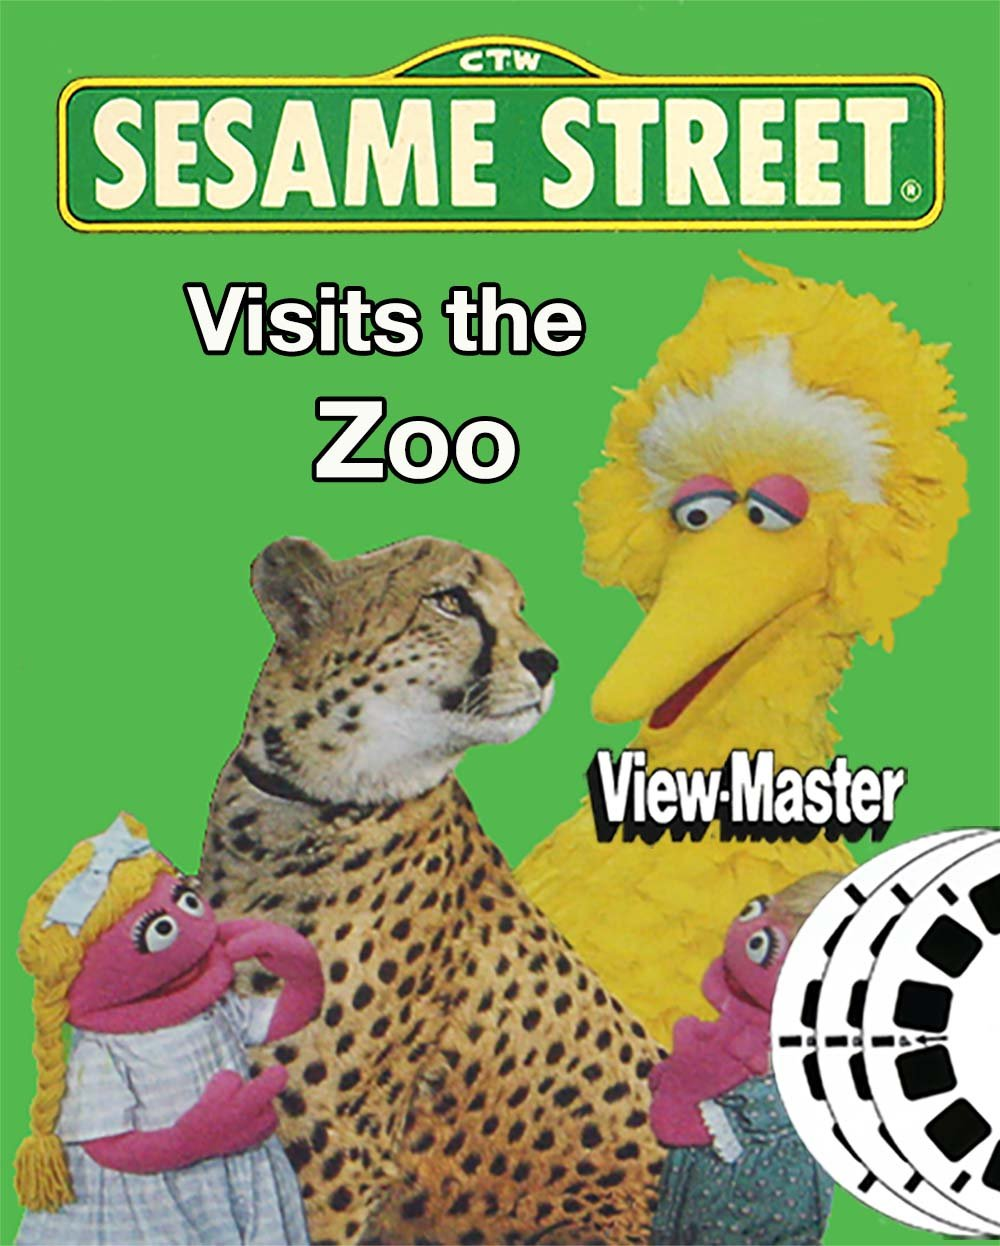 Sesame Visits the Zoo - Classic ViewMaster 3 Reel Set - 21 3D Images - Ernie, Big Bird by 3Dstereo ViewMaster